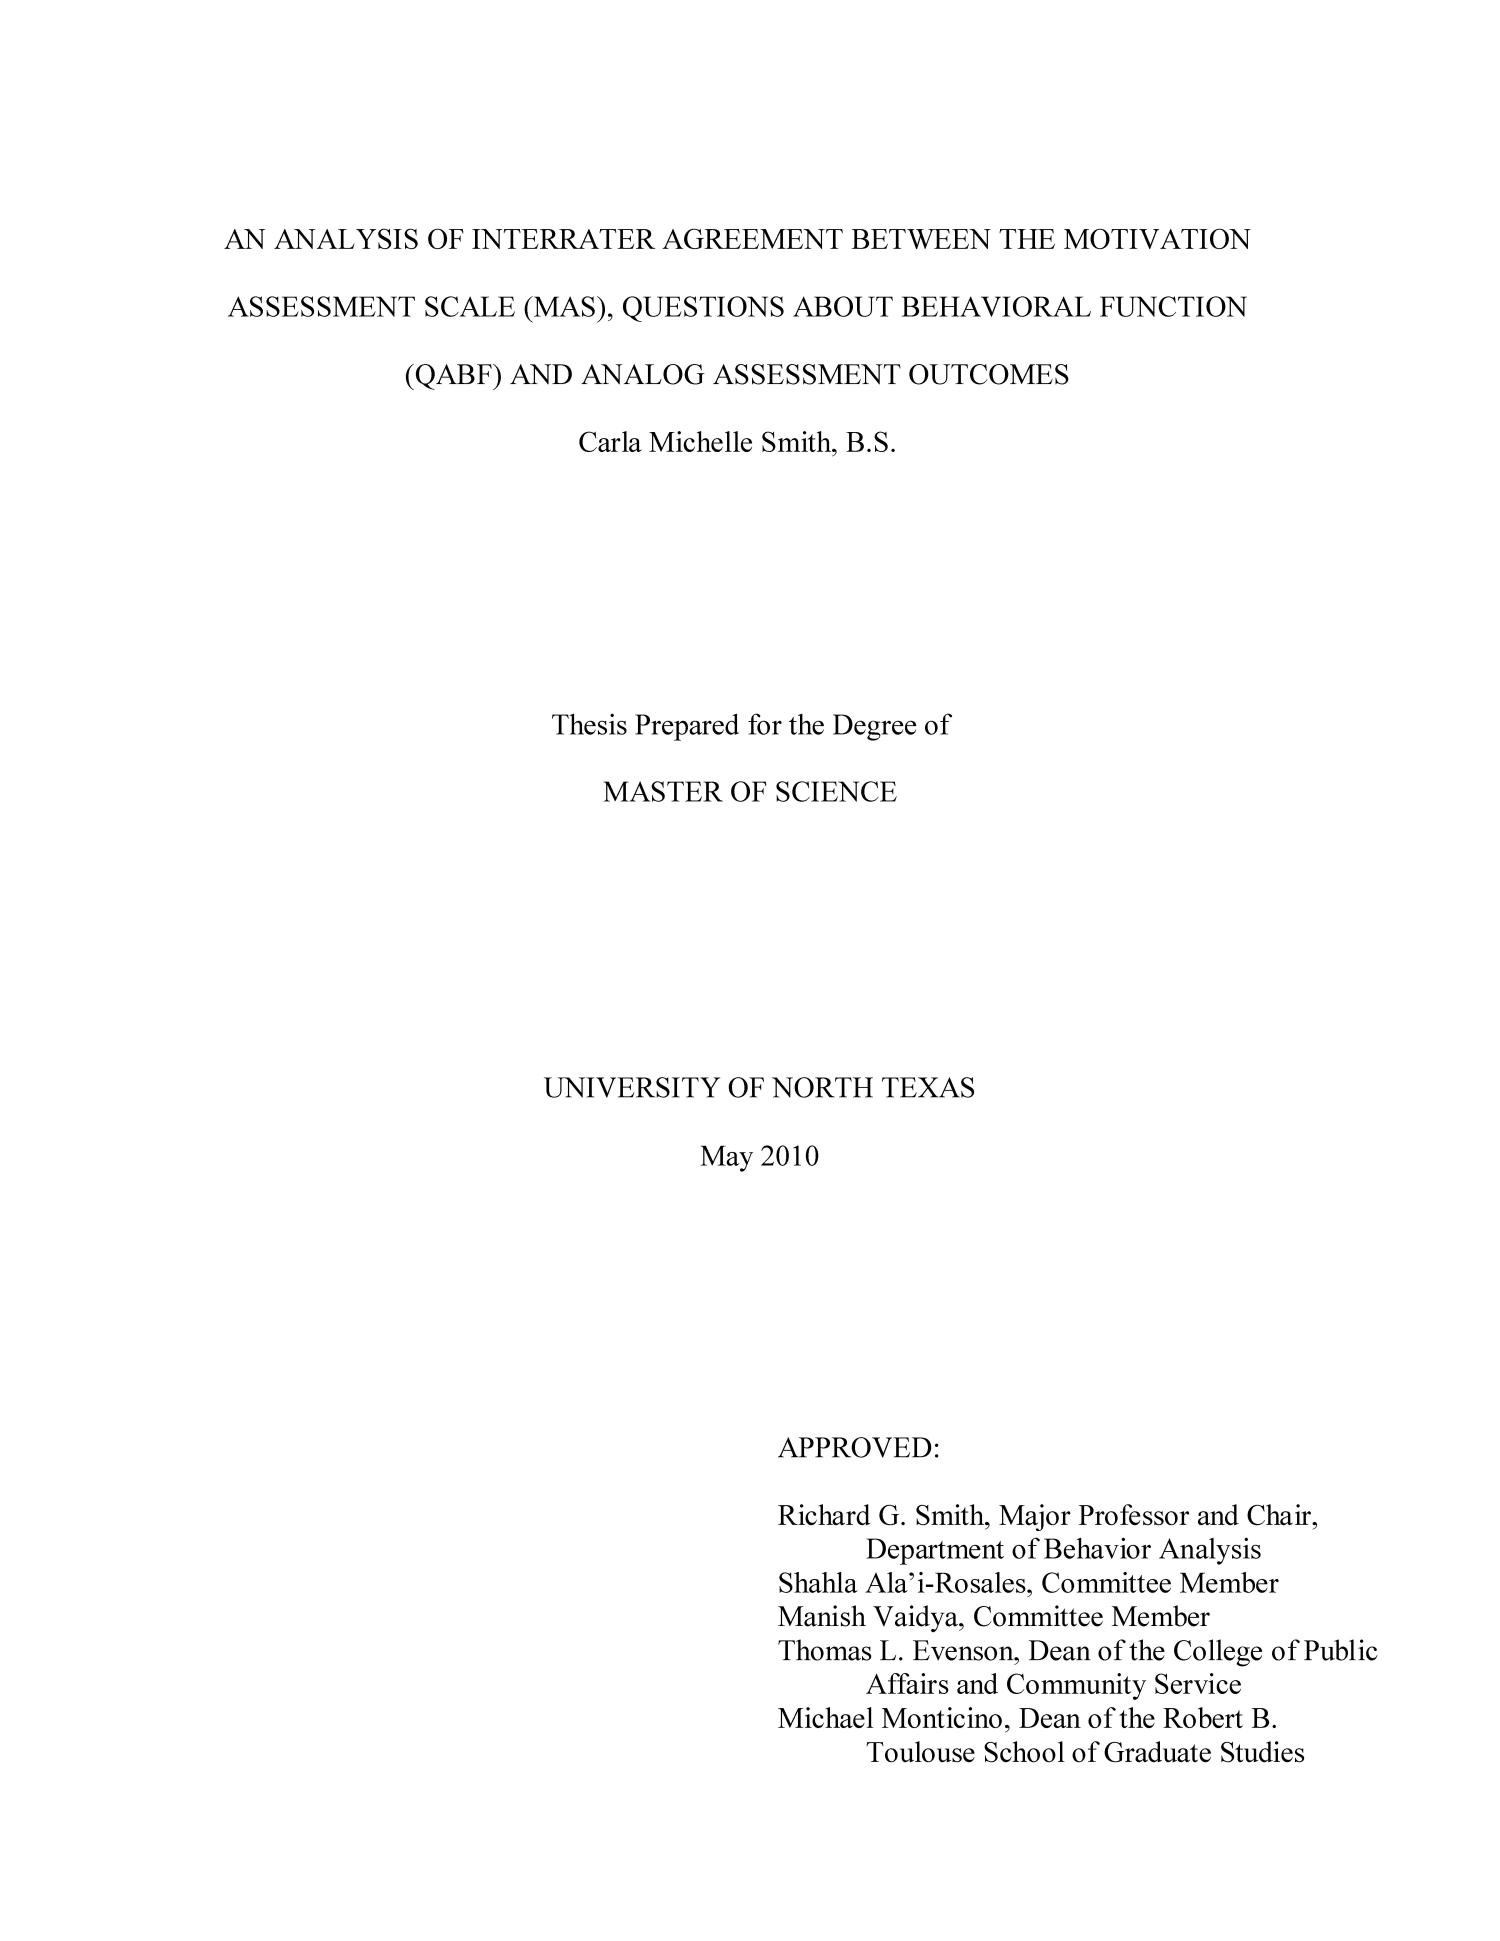 an analysis of interrater agreement between the motivation an analysis of interrater agreement between the motivation assessment scale mas questions about behavioral function qabf and analog assessment